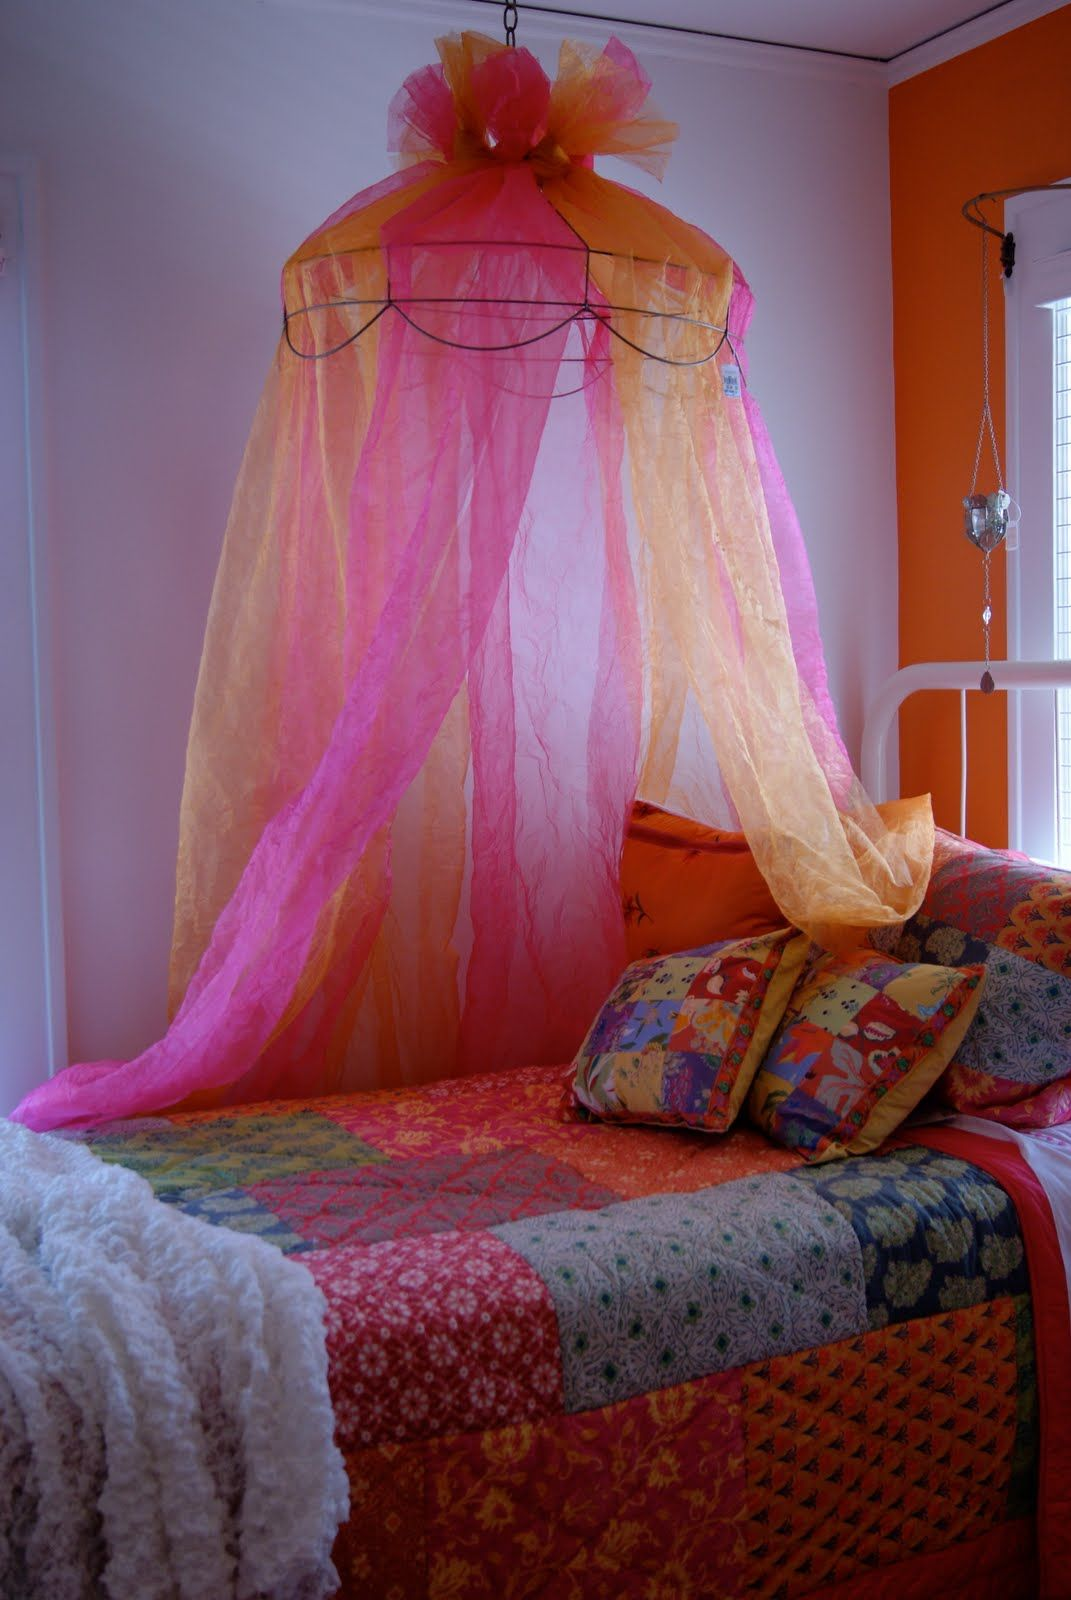 lampshade carcass turned into bed canopy | For the Home | Pinterest